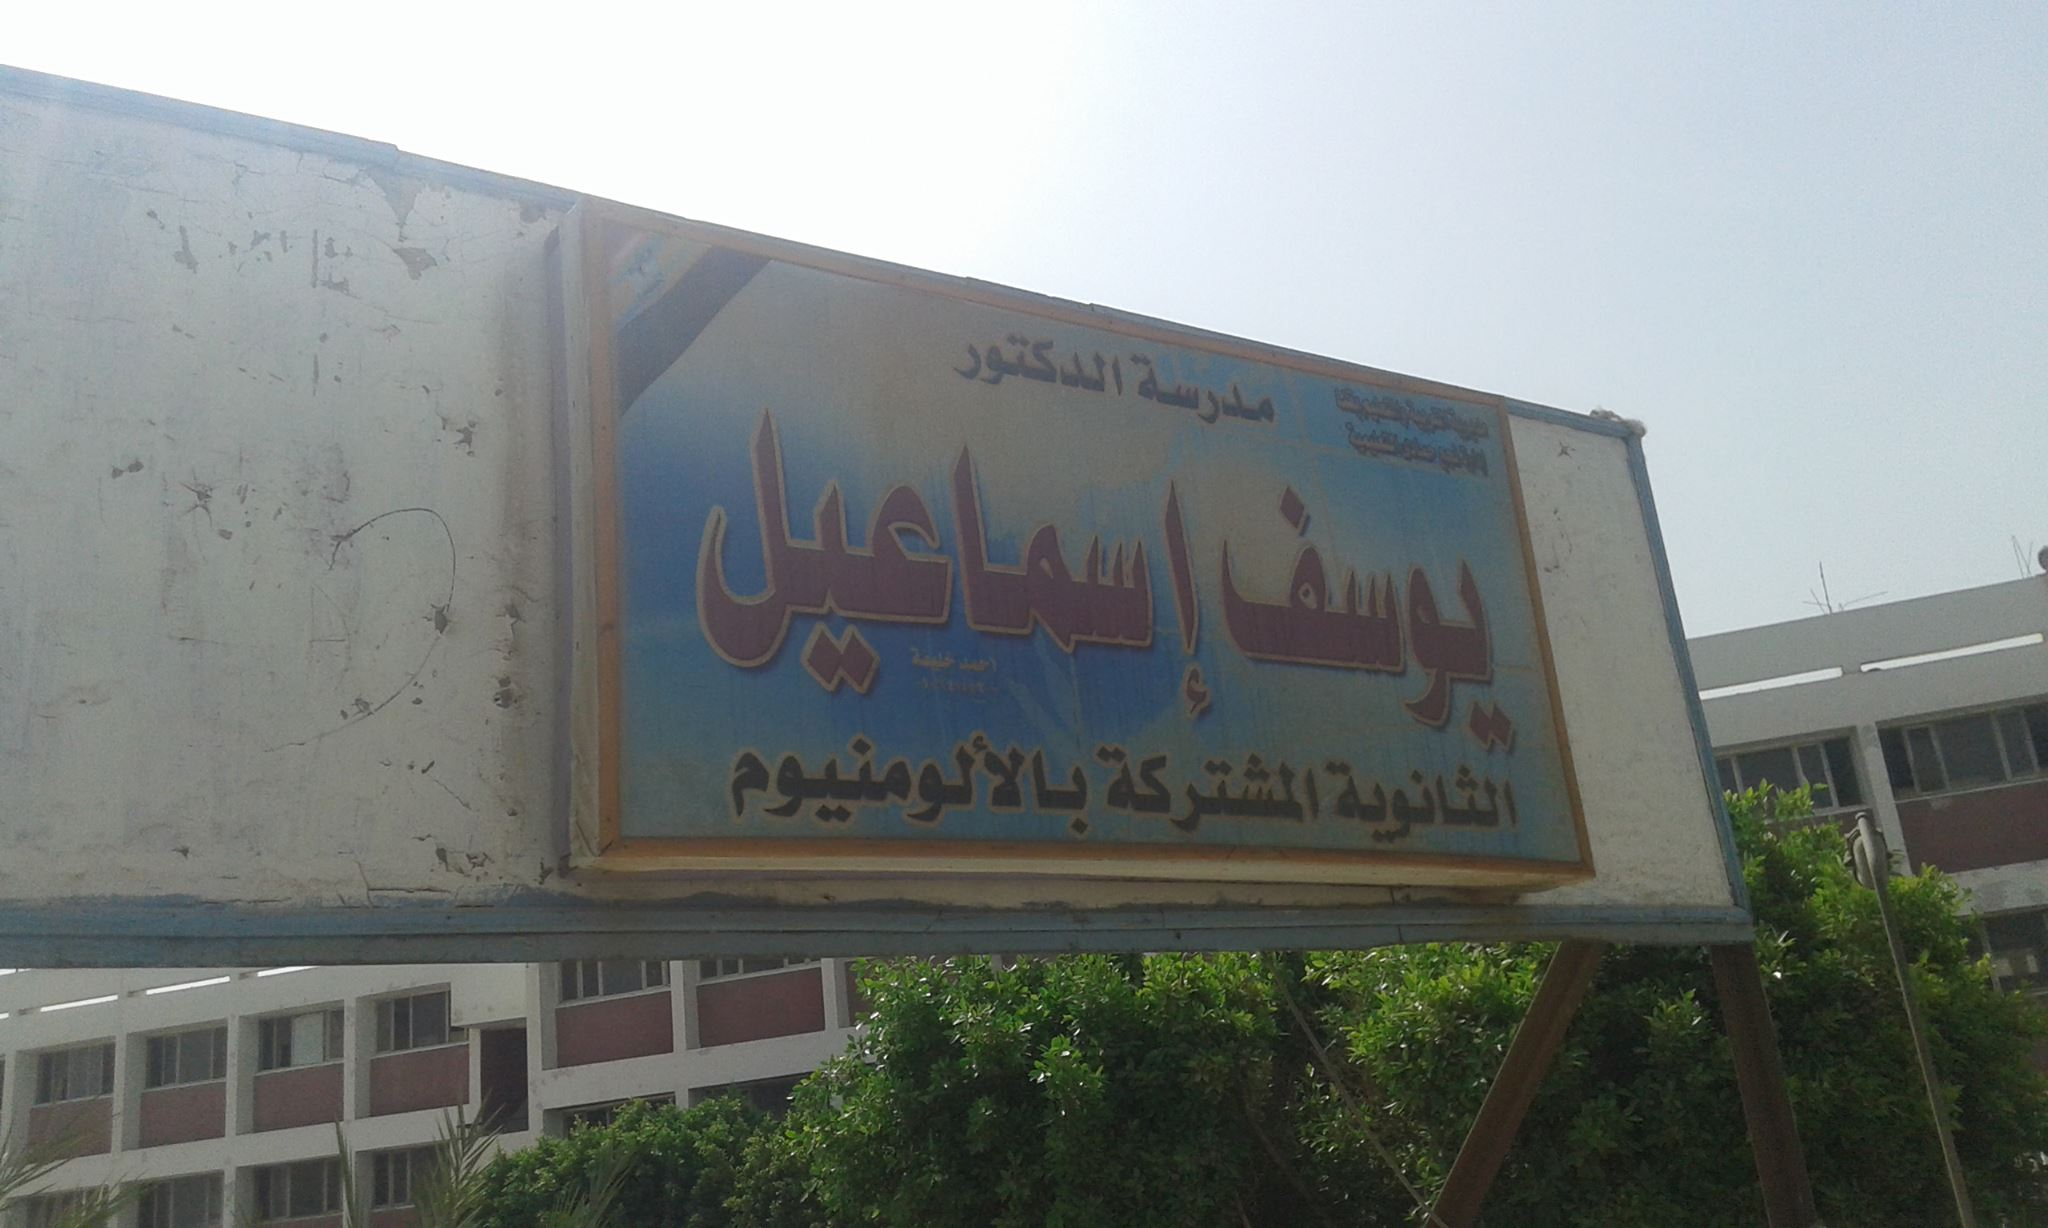 Dr. Youssef Ismail Secondary School